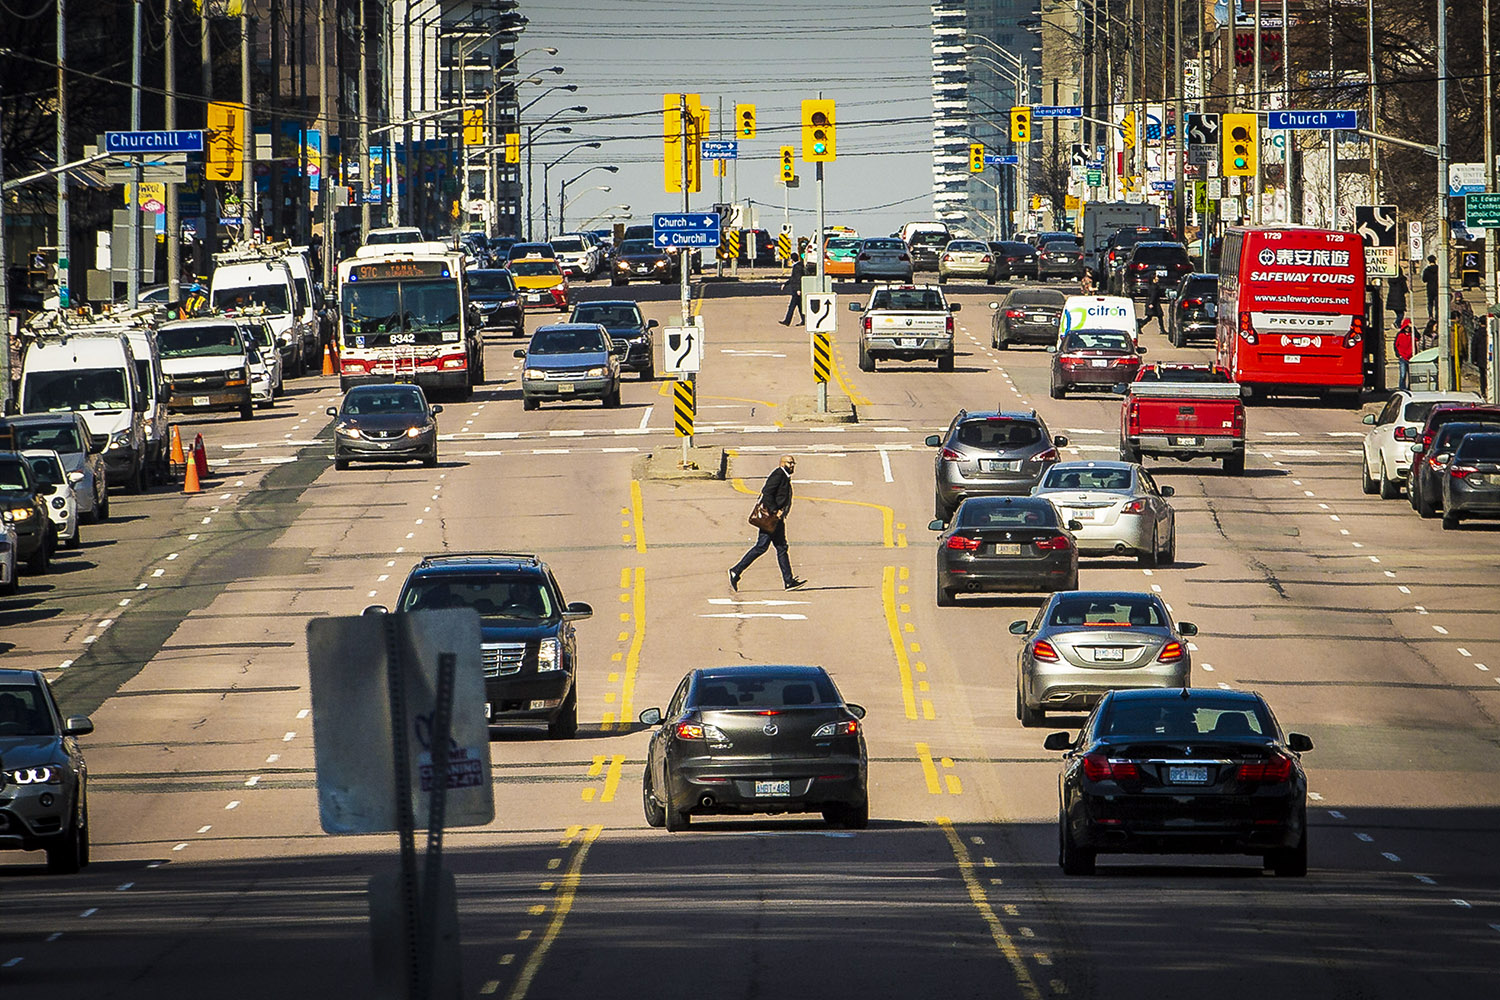 A plan to transform Yonge between Sheppard and Finch, and make it more bike and pedestrian friendly with bike lanes, has been nixed by the public works committee, Wednesday, February 28, 2018.